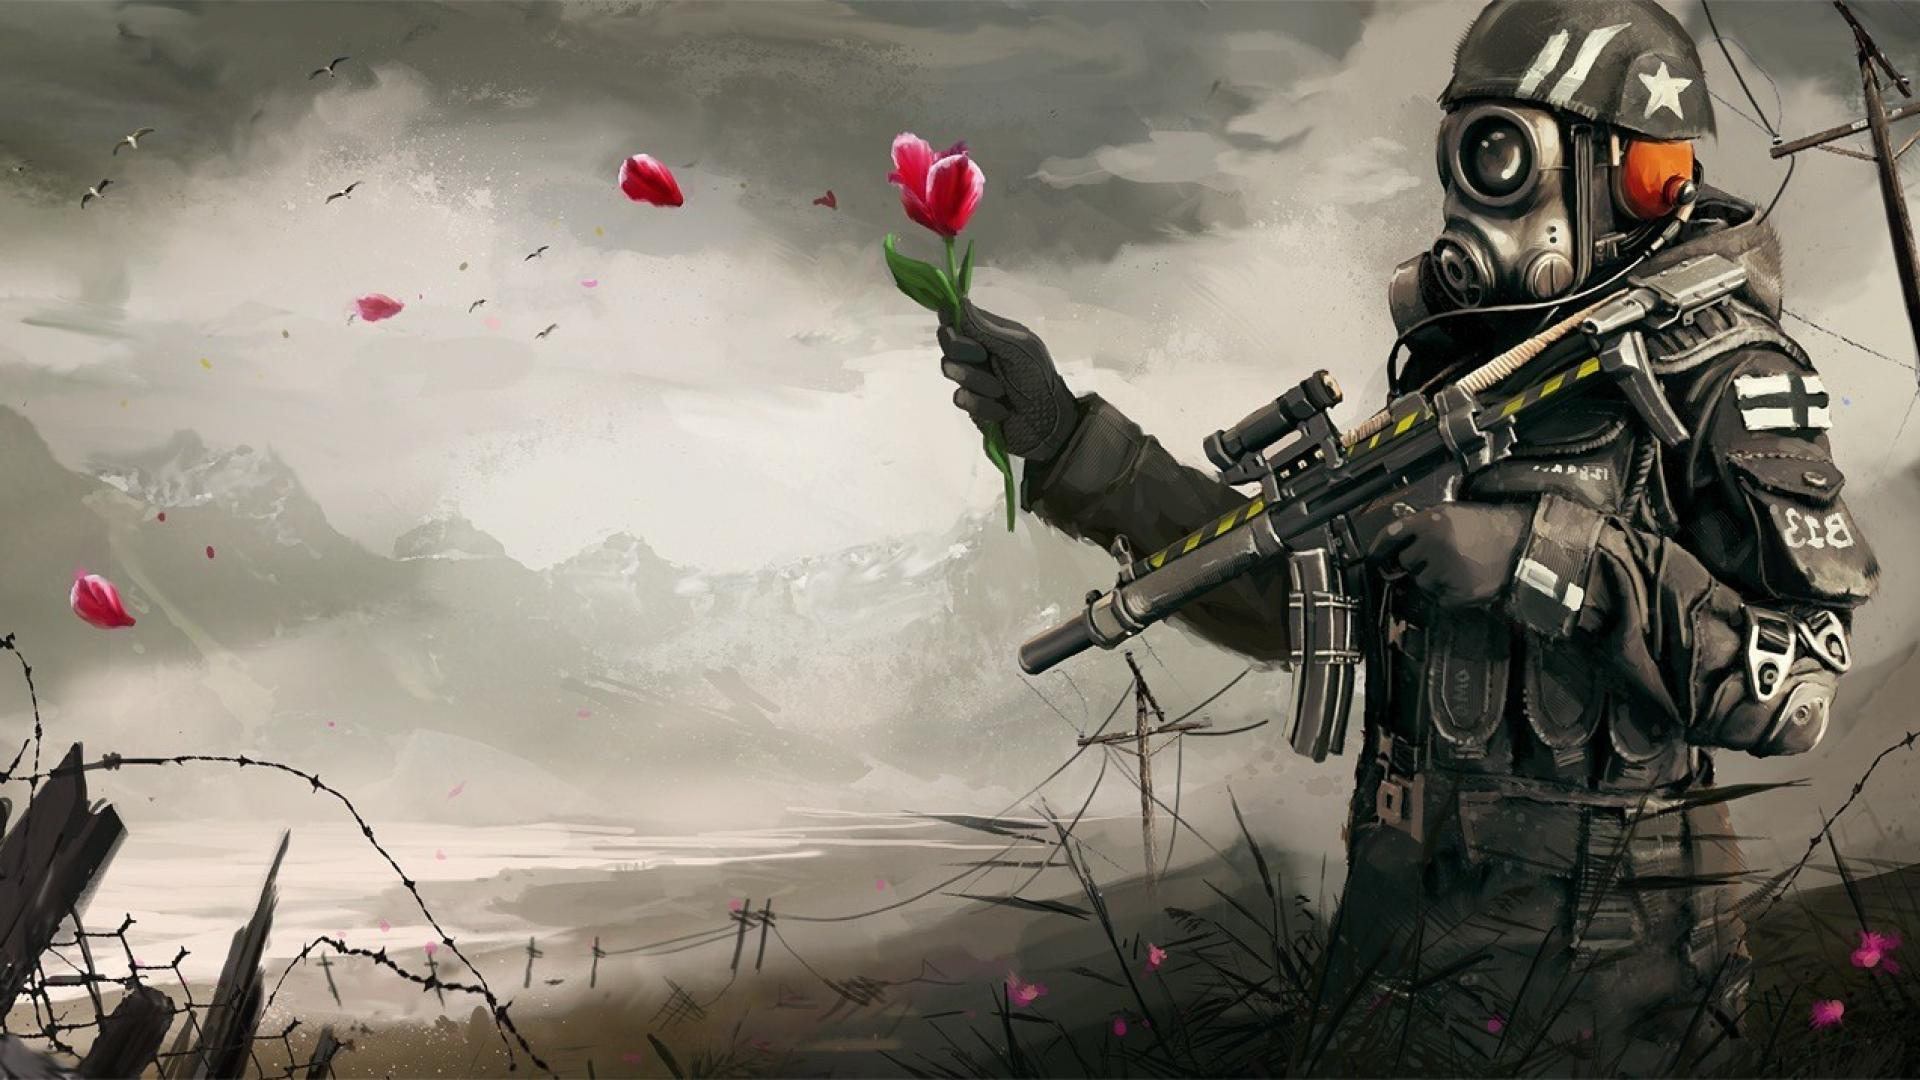 Gas Mask Soldier Wallpapers - Top Free Gas Mask Soldier ...